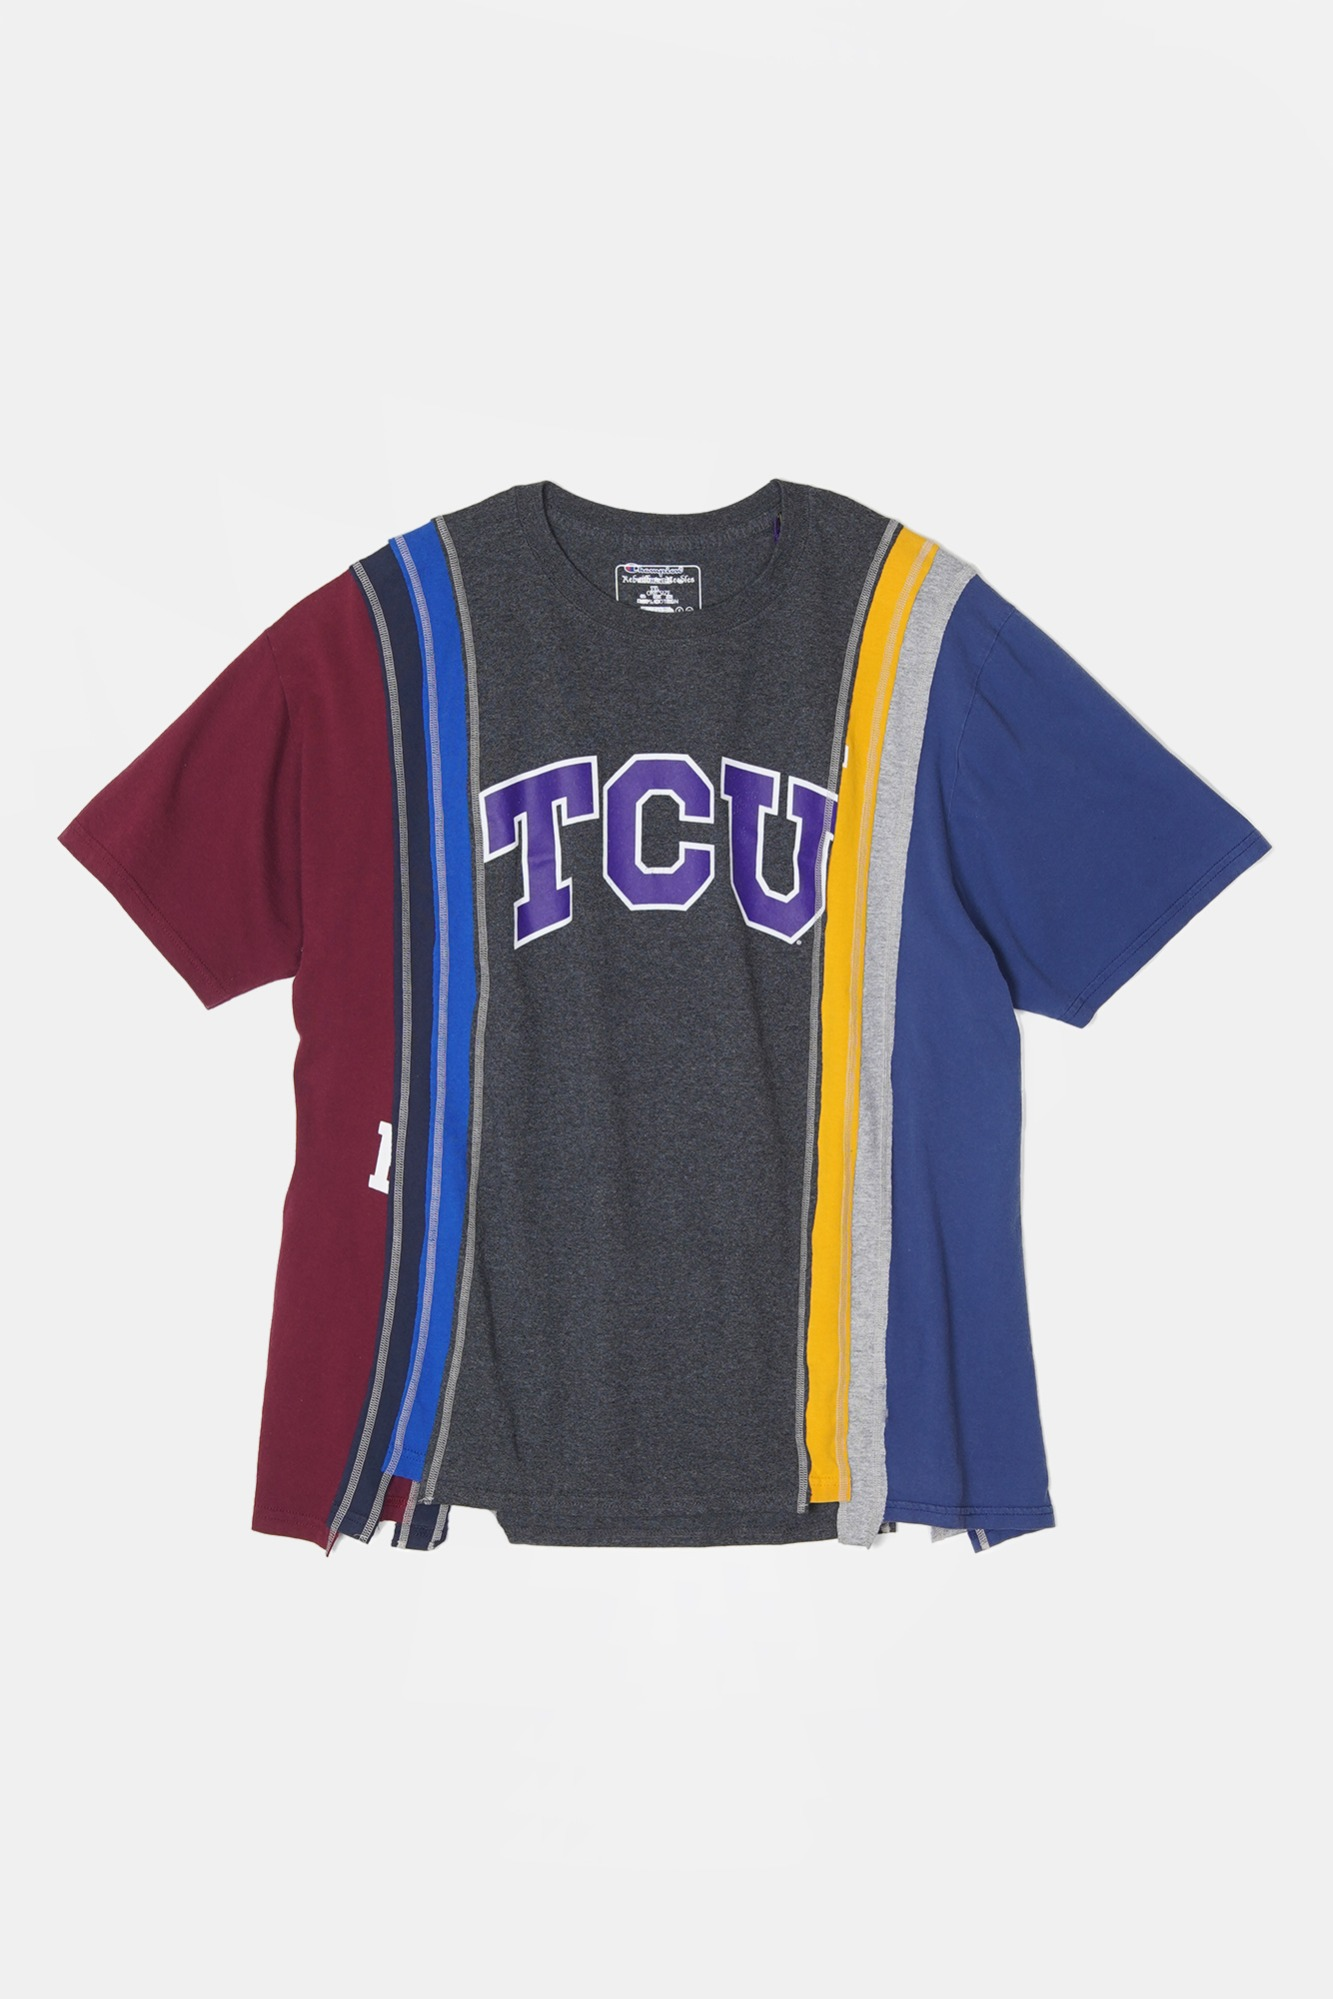 REBUILD BY NEEDLES 7 Cuts S/S College Wide Tee 4